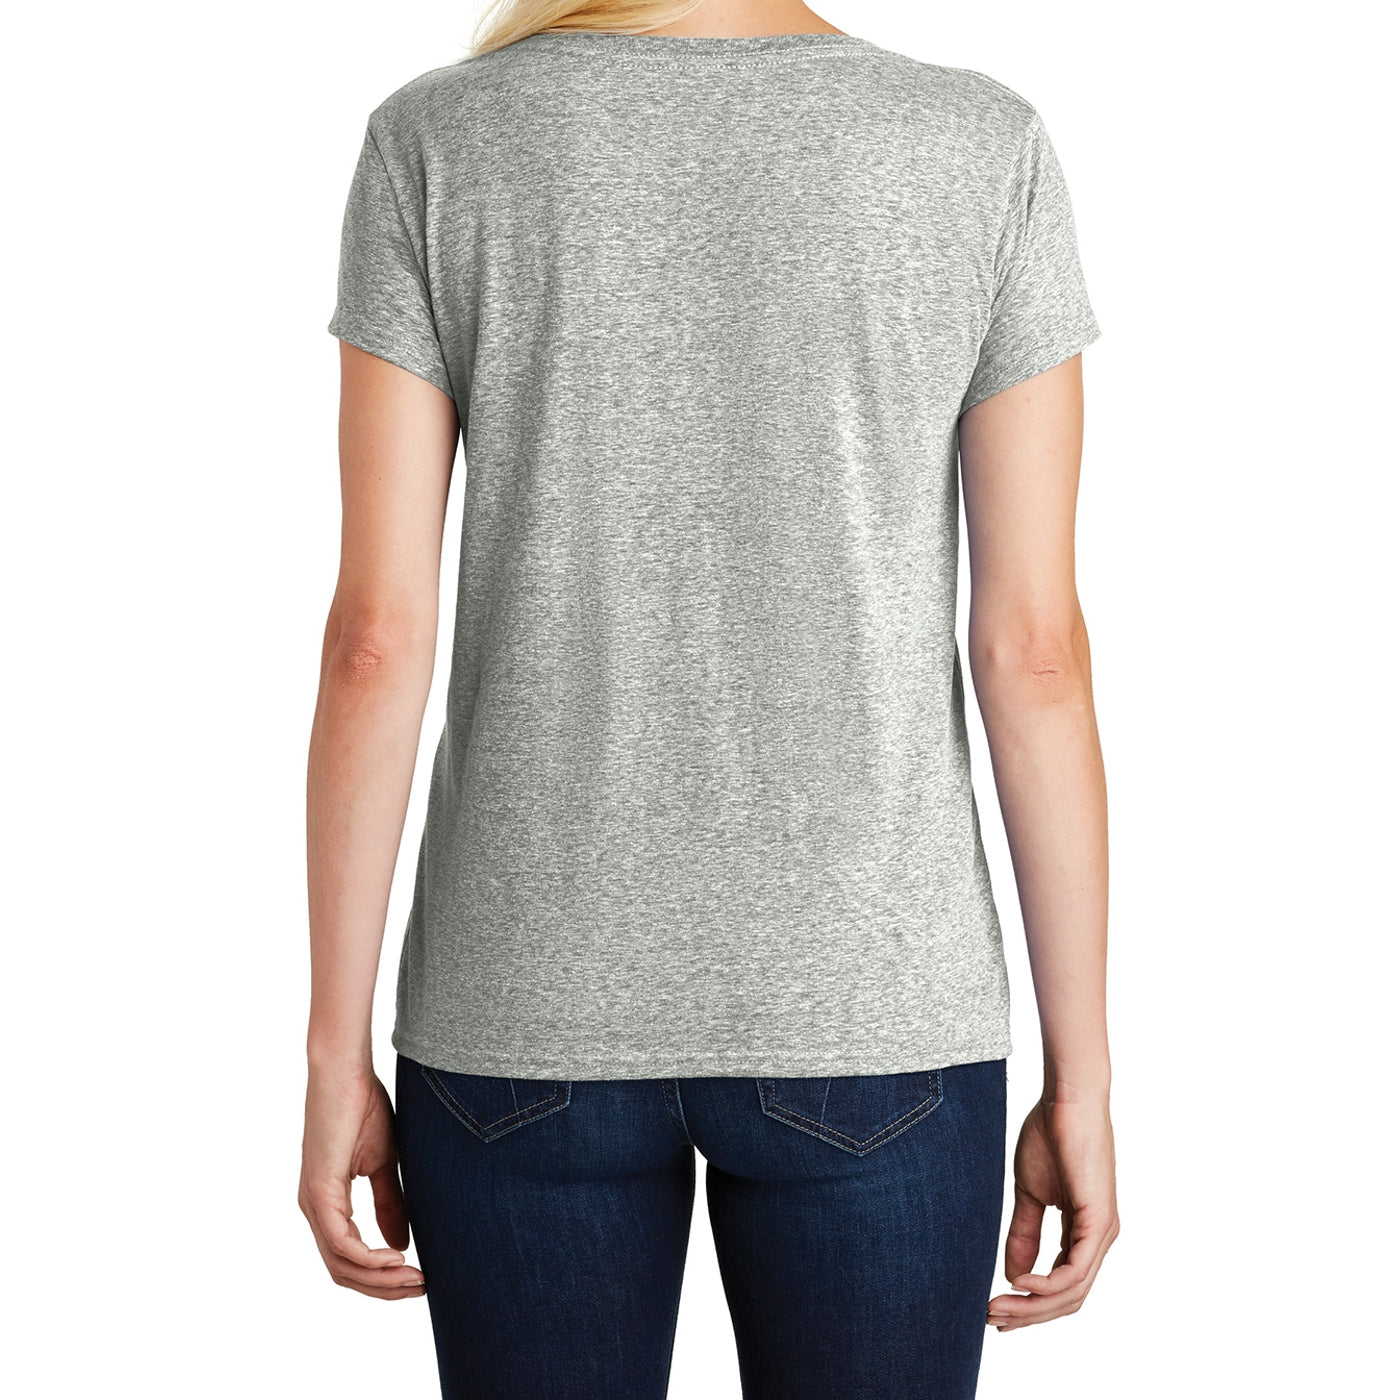 Women's Cosmic Relaxed V-Neck Tee - Grey Astro